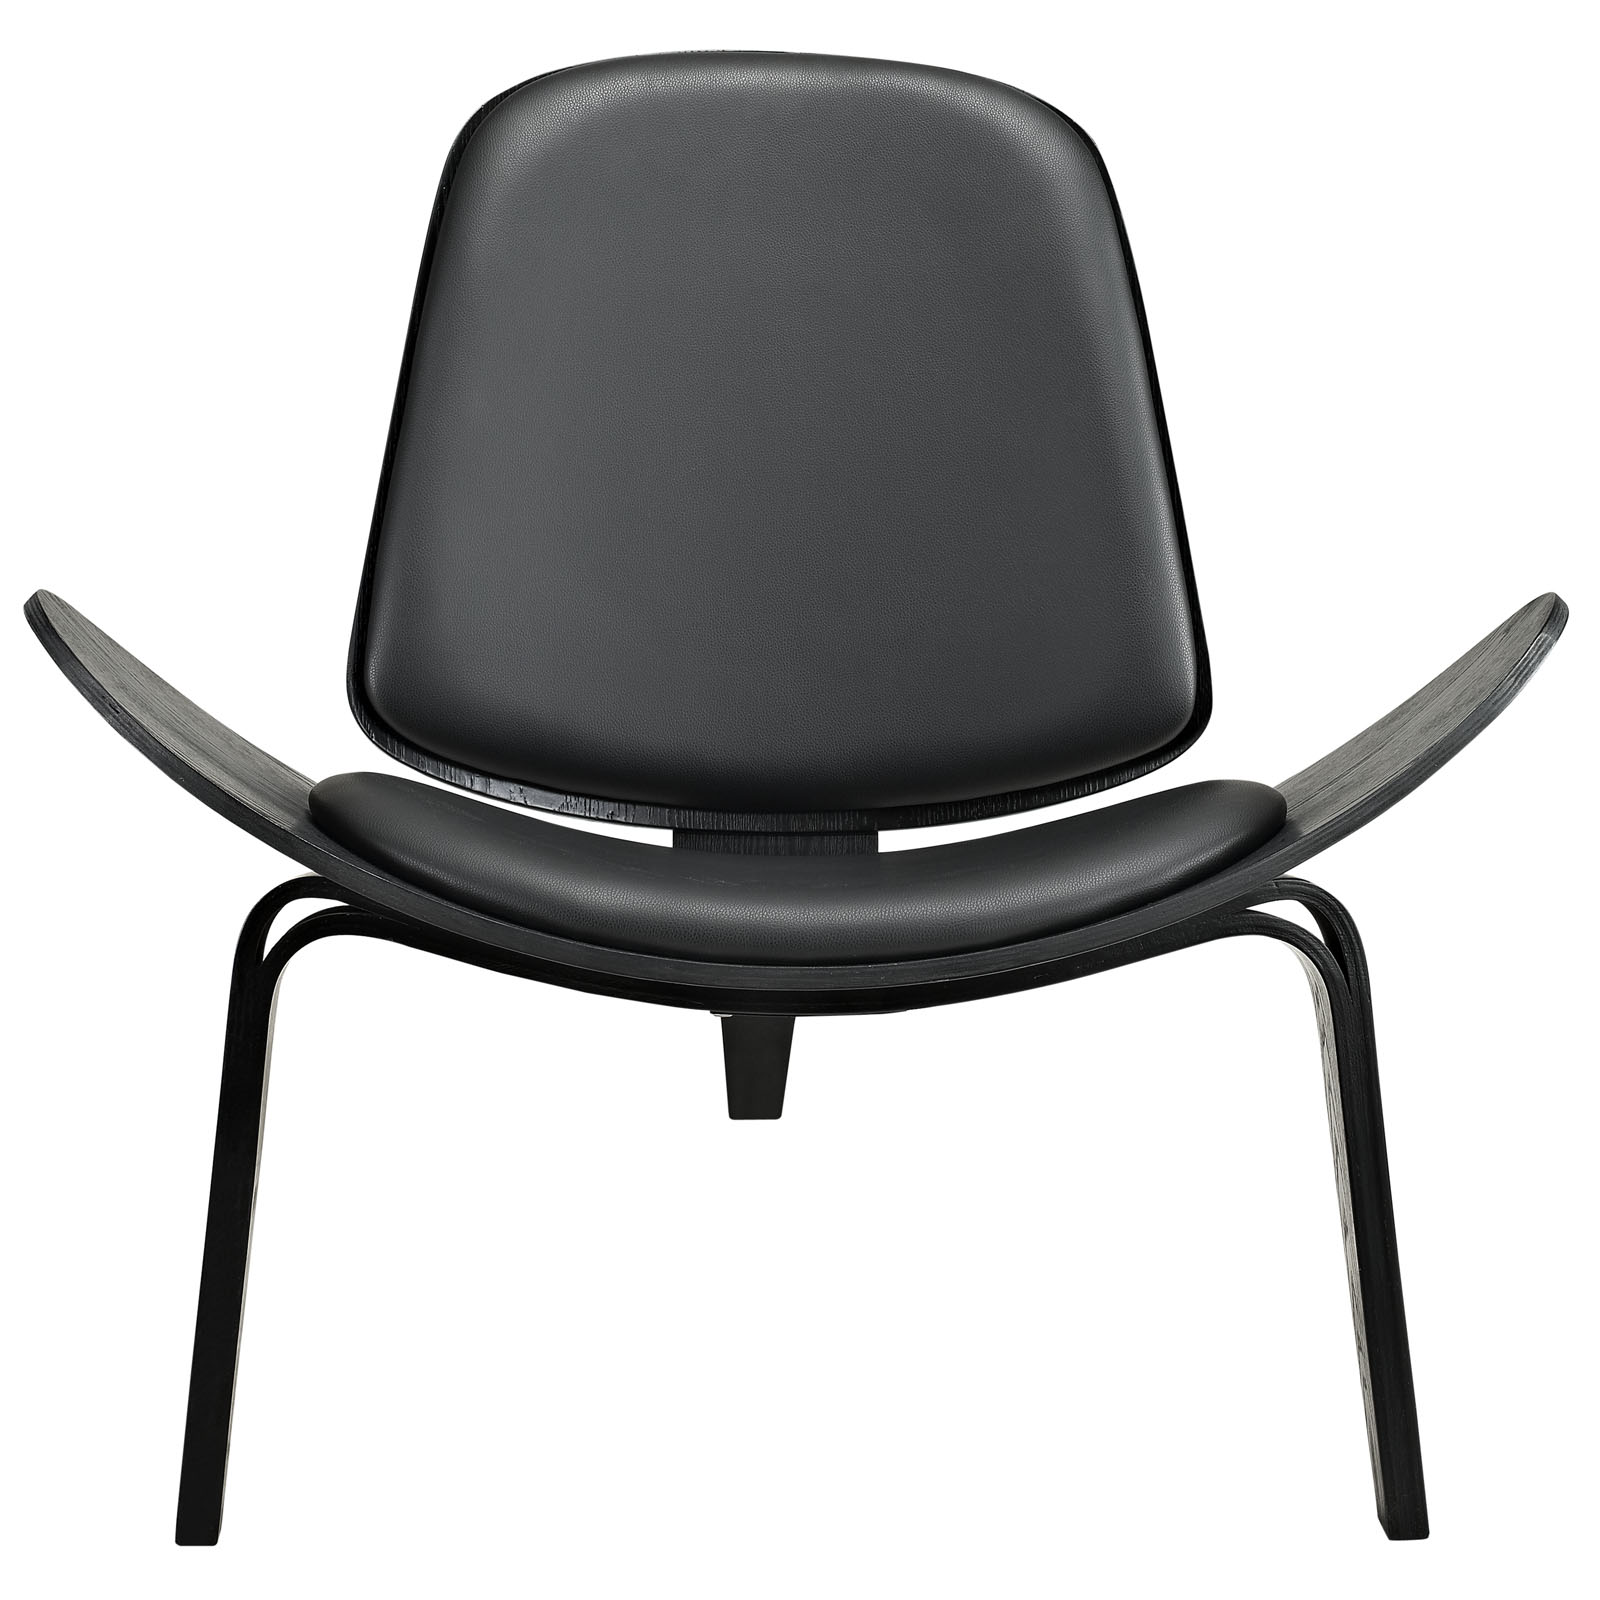 Contemporary Styled Arched Lounge Chair with Many Color Options